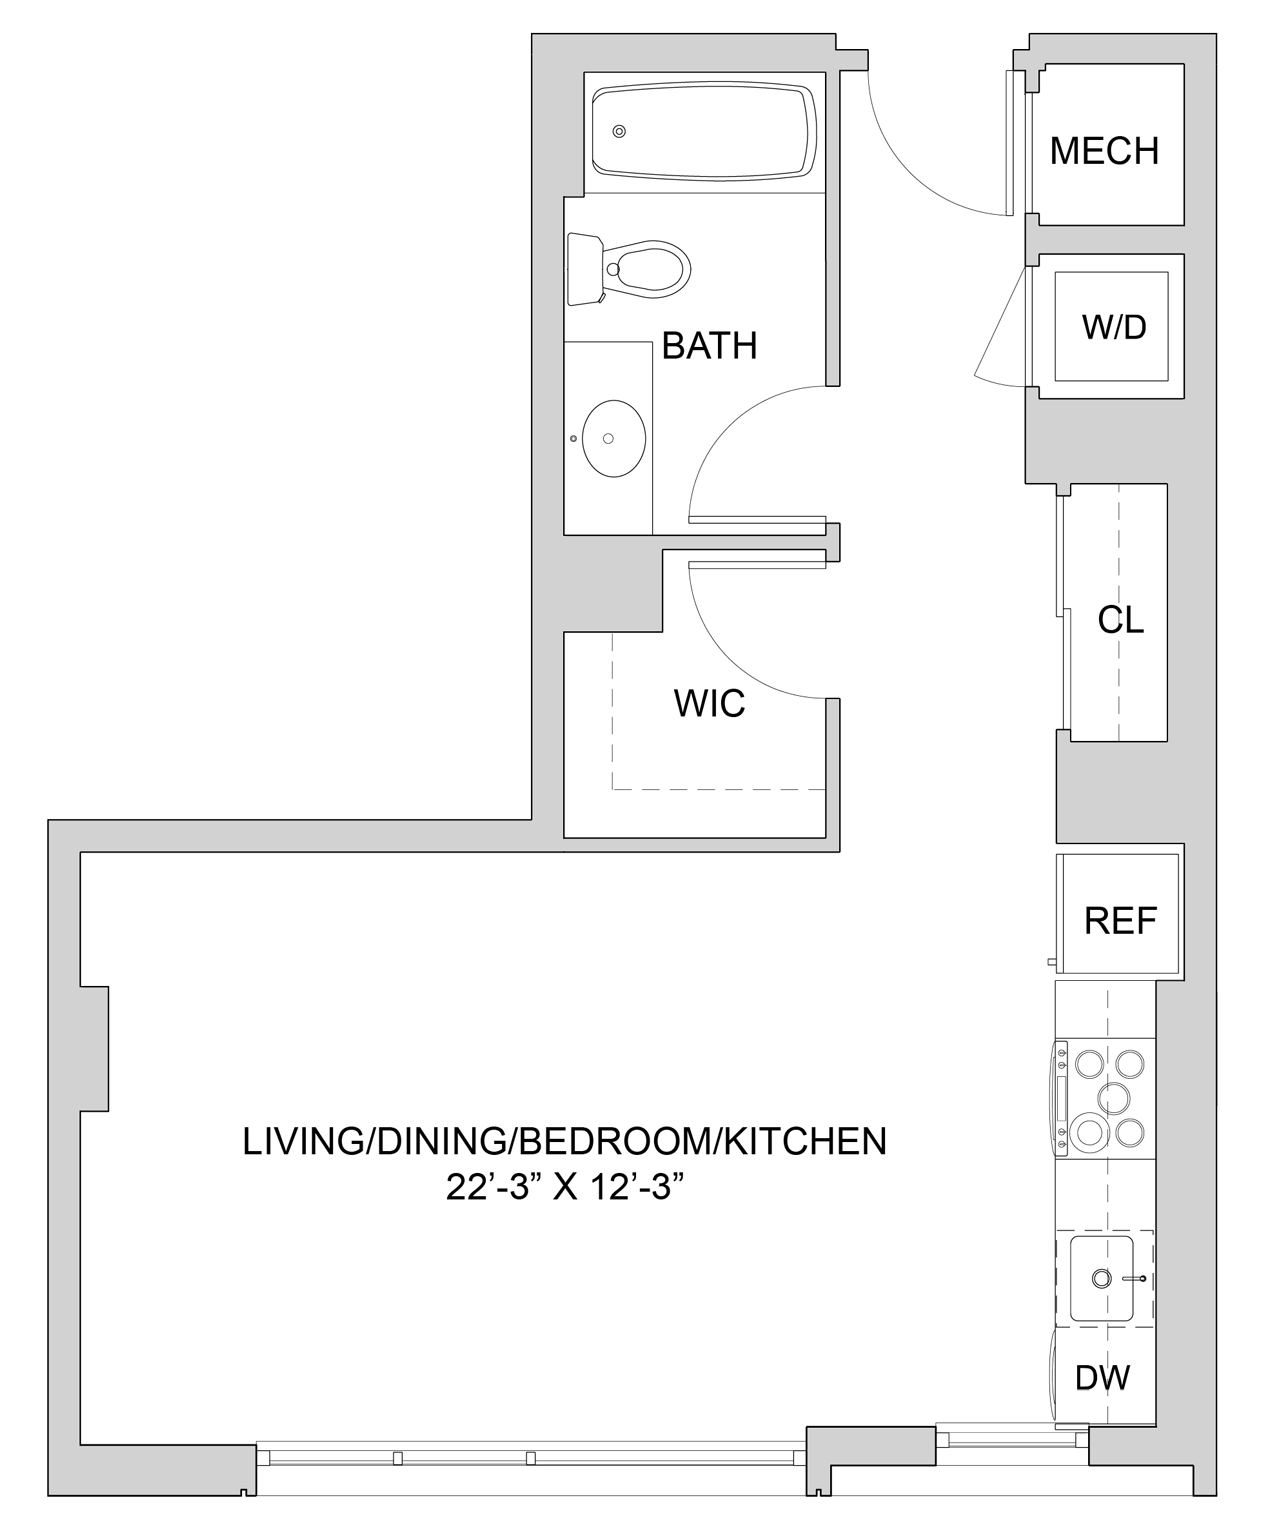 Floorplan W209 Image enlarged